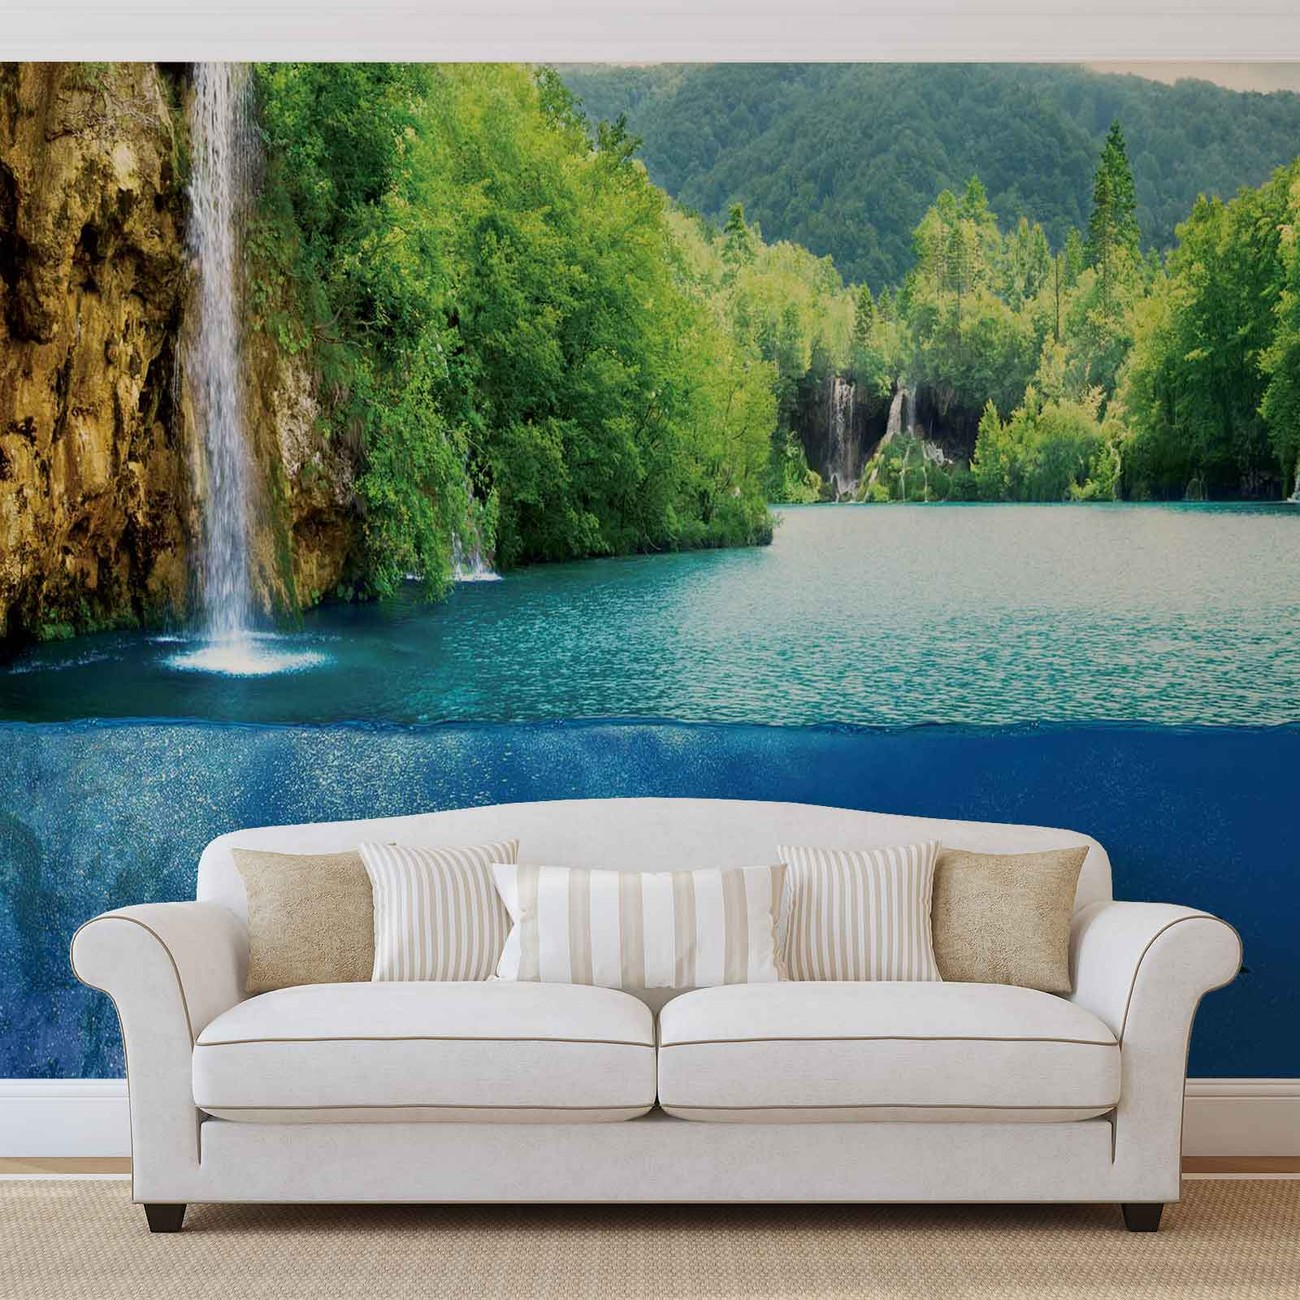 fototapete tapete wasserfall see natur delphine bei. Black Bedroom Furniture Sets. Home Design Ideas